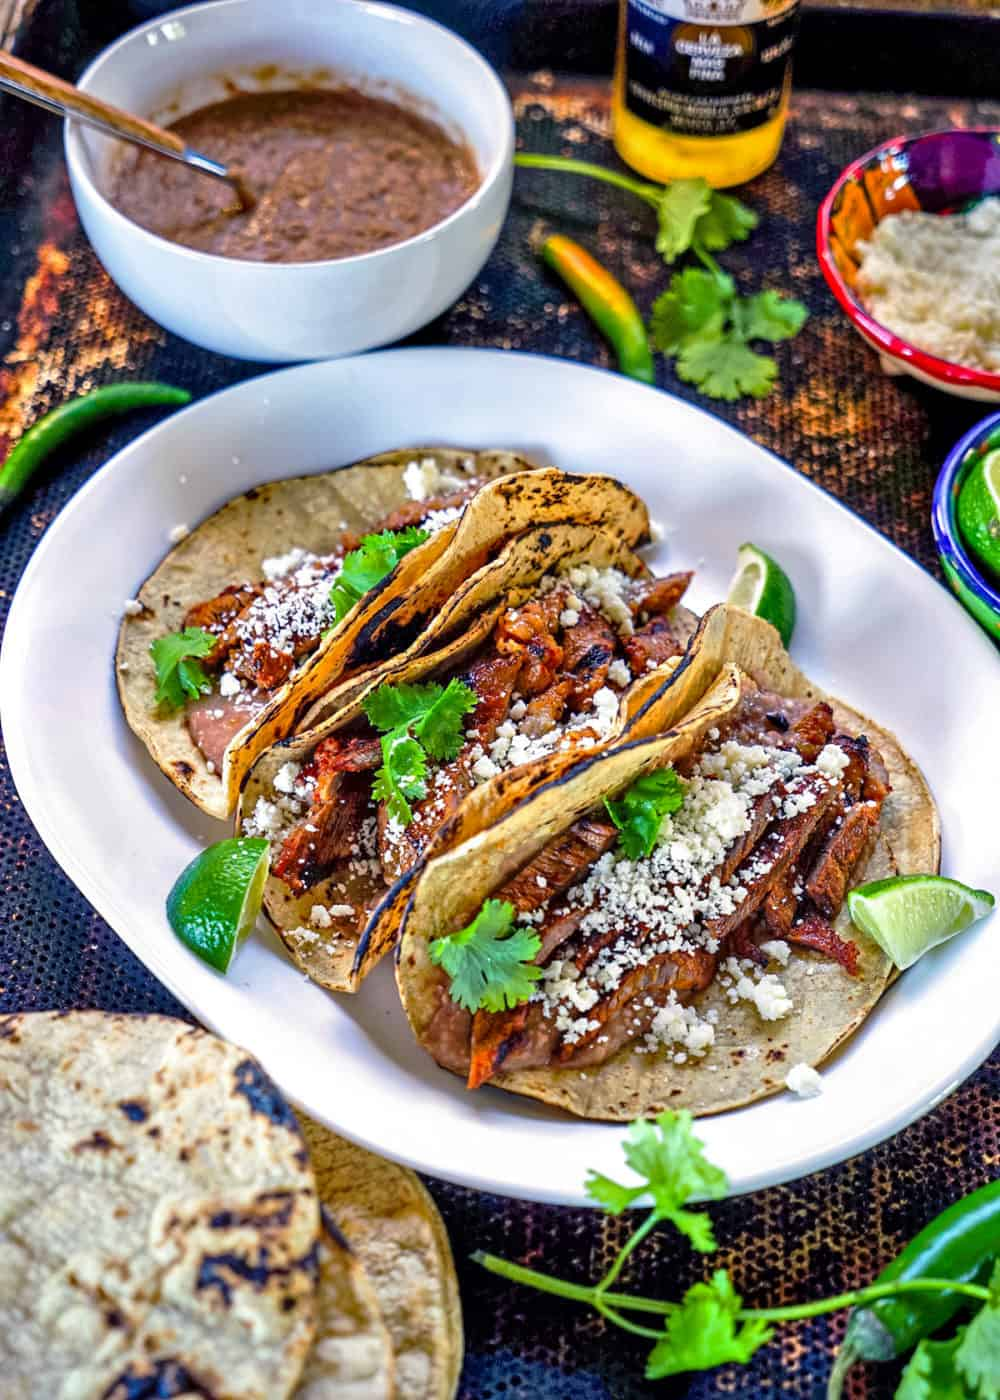 Mexican steak taco dinner on table with corn tortillas and refried beans